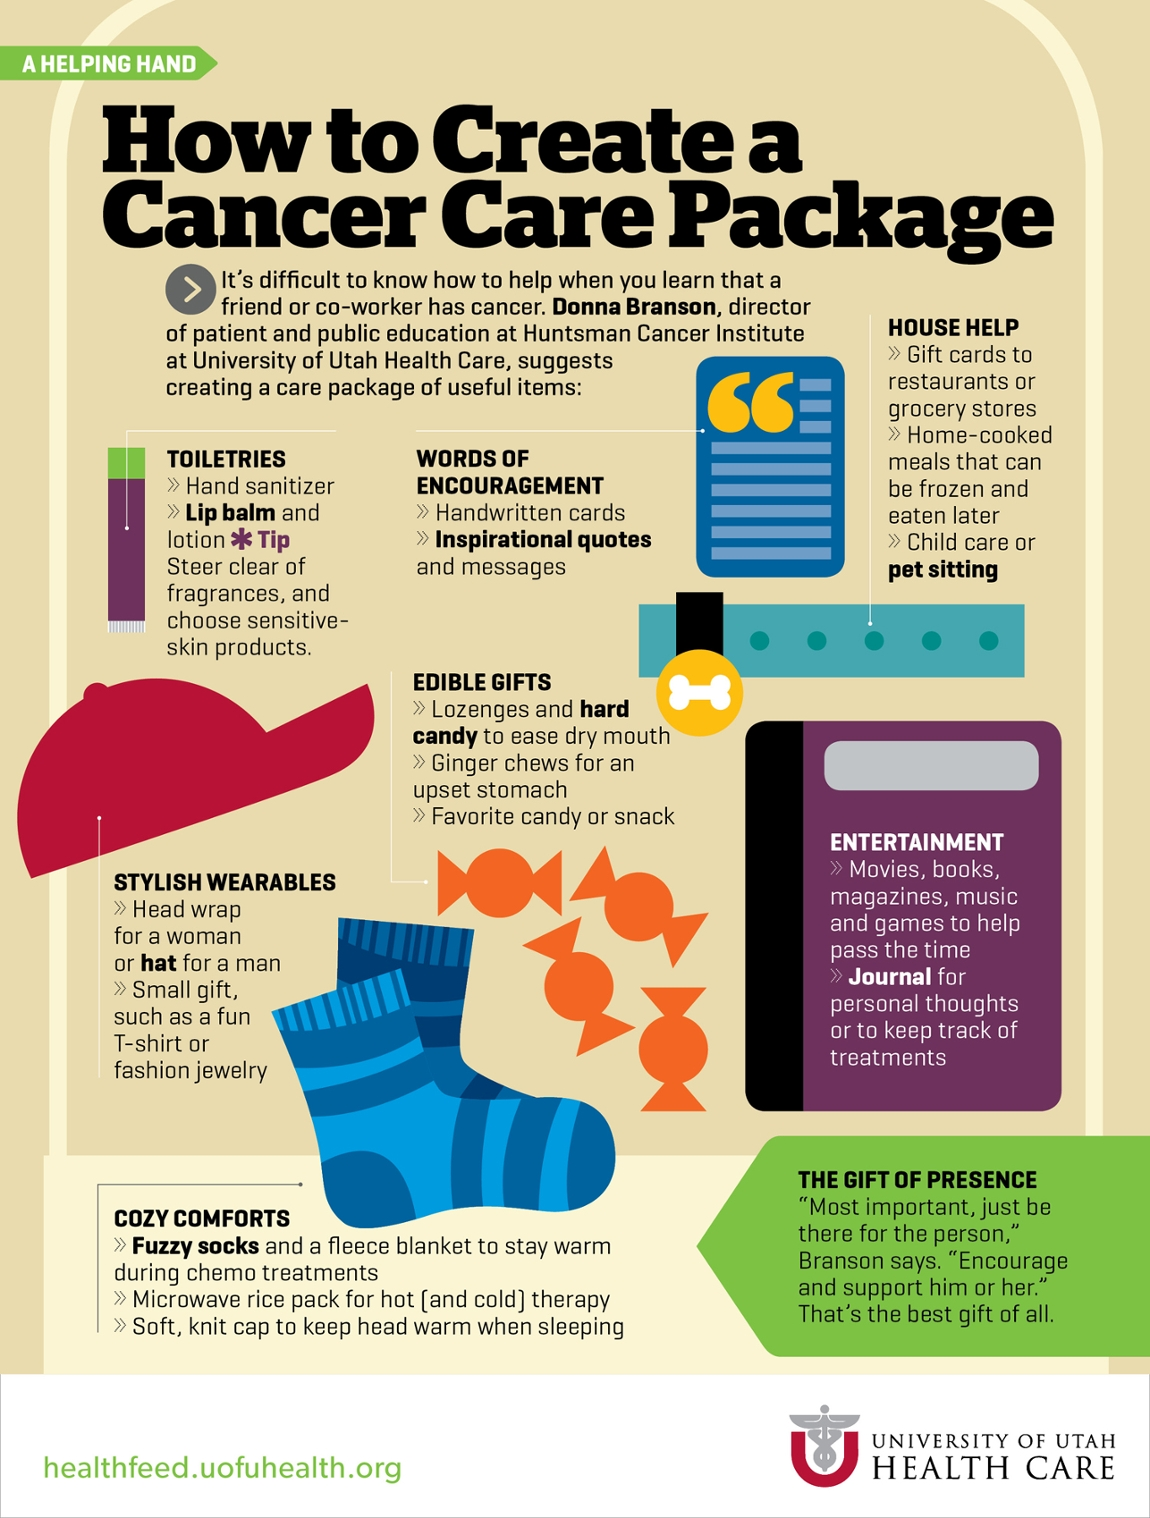 cancer care package ideas infographic